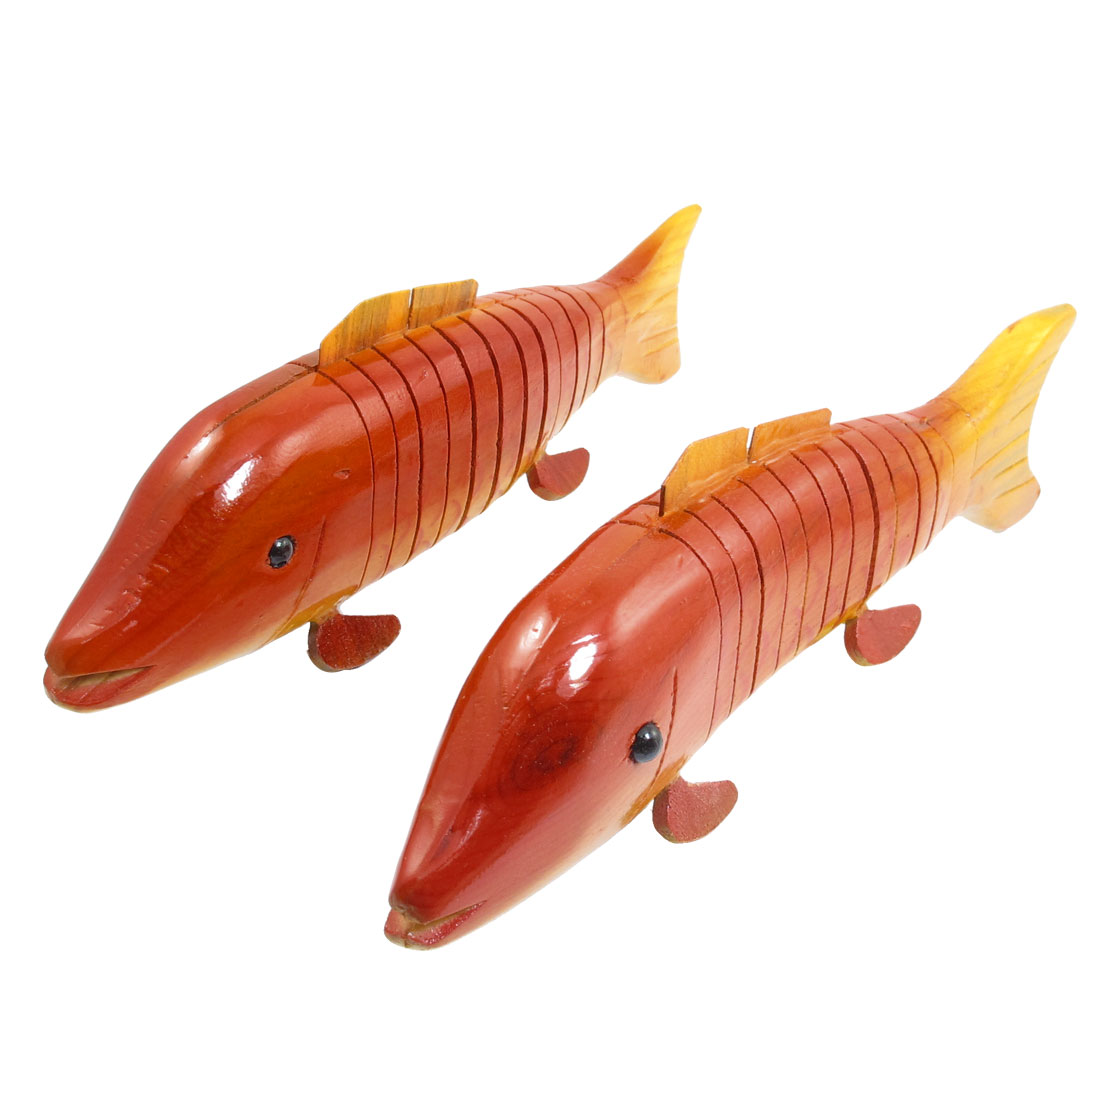 2 Pcs Simulated Flexible Body Wood Wooden Carp Fish Toy for Children